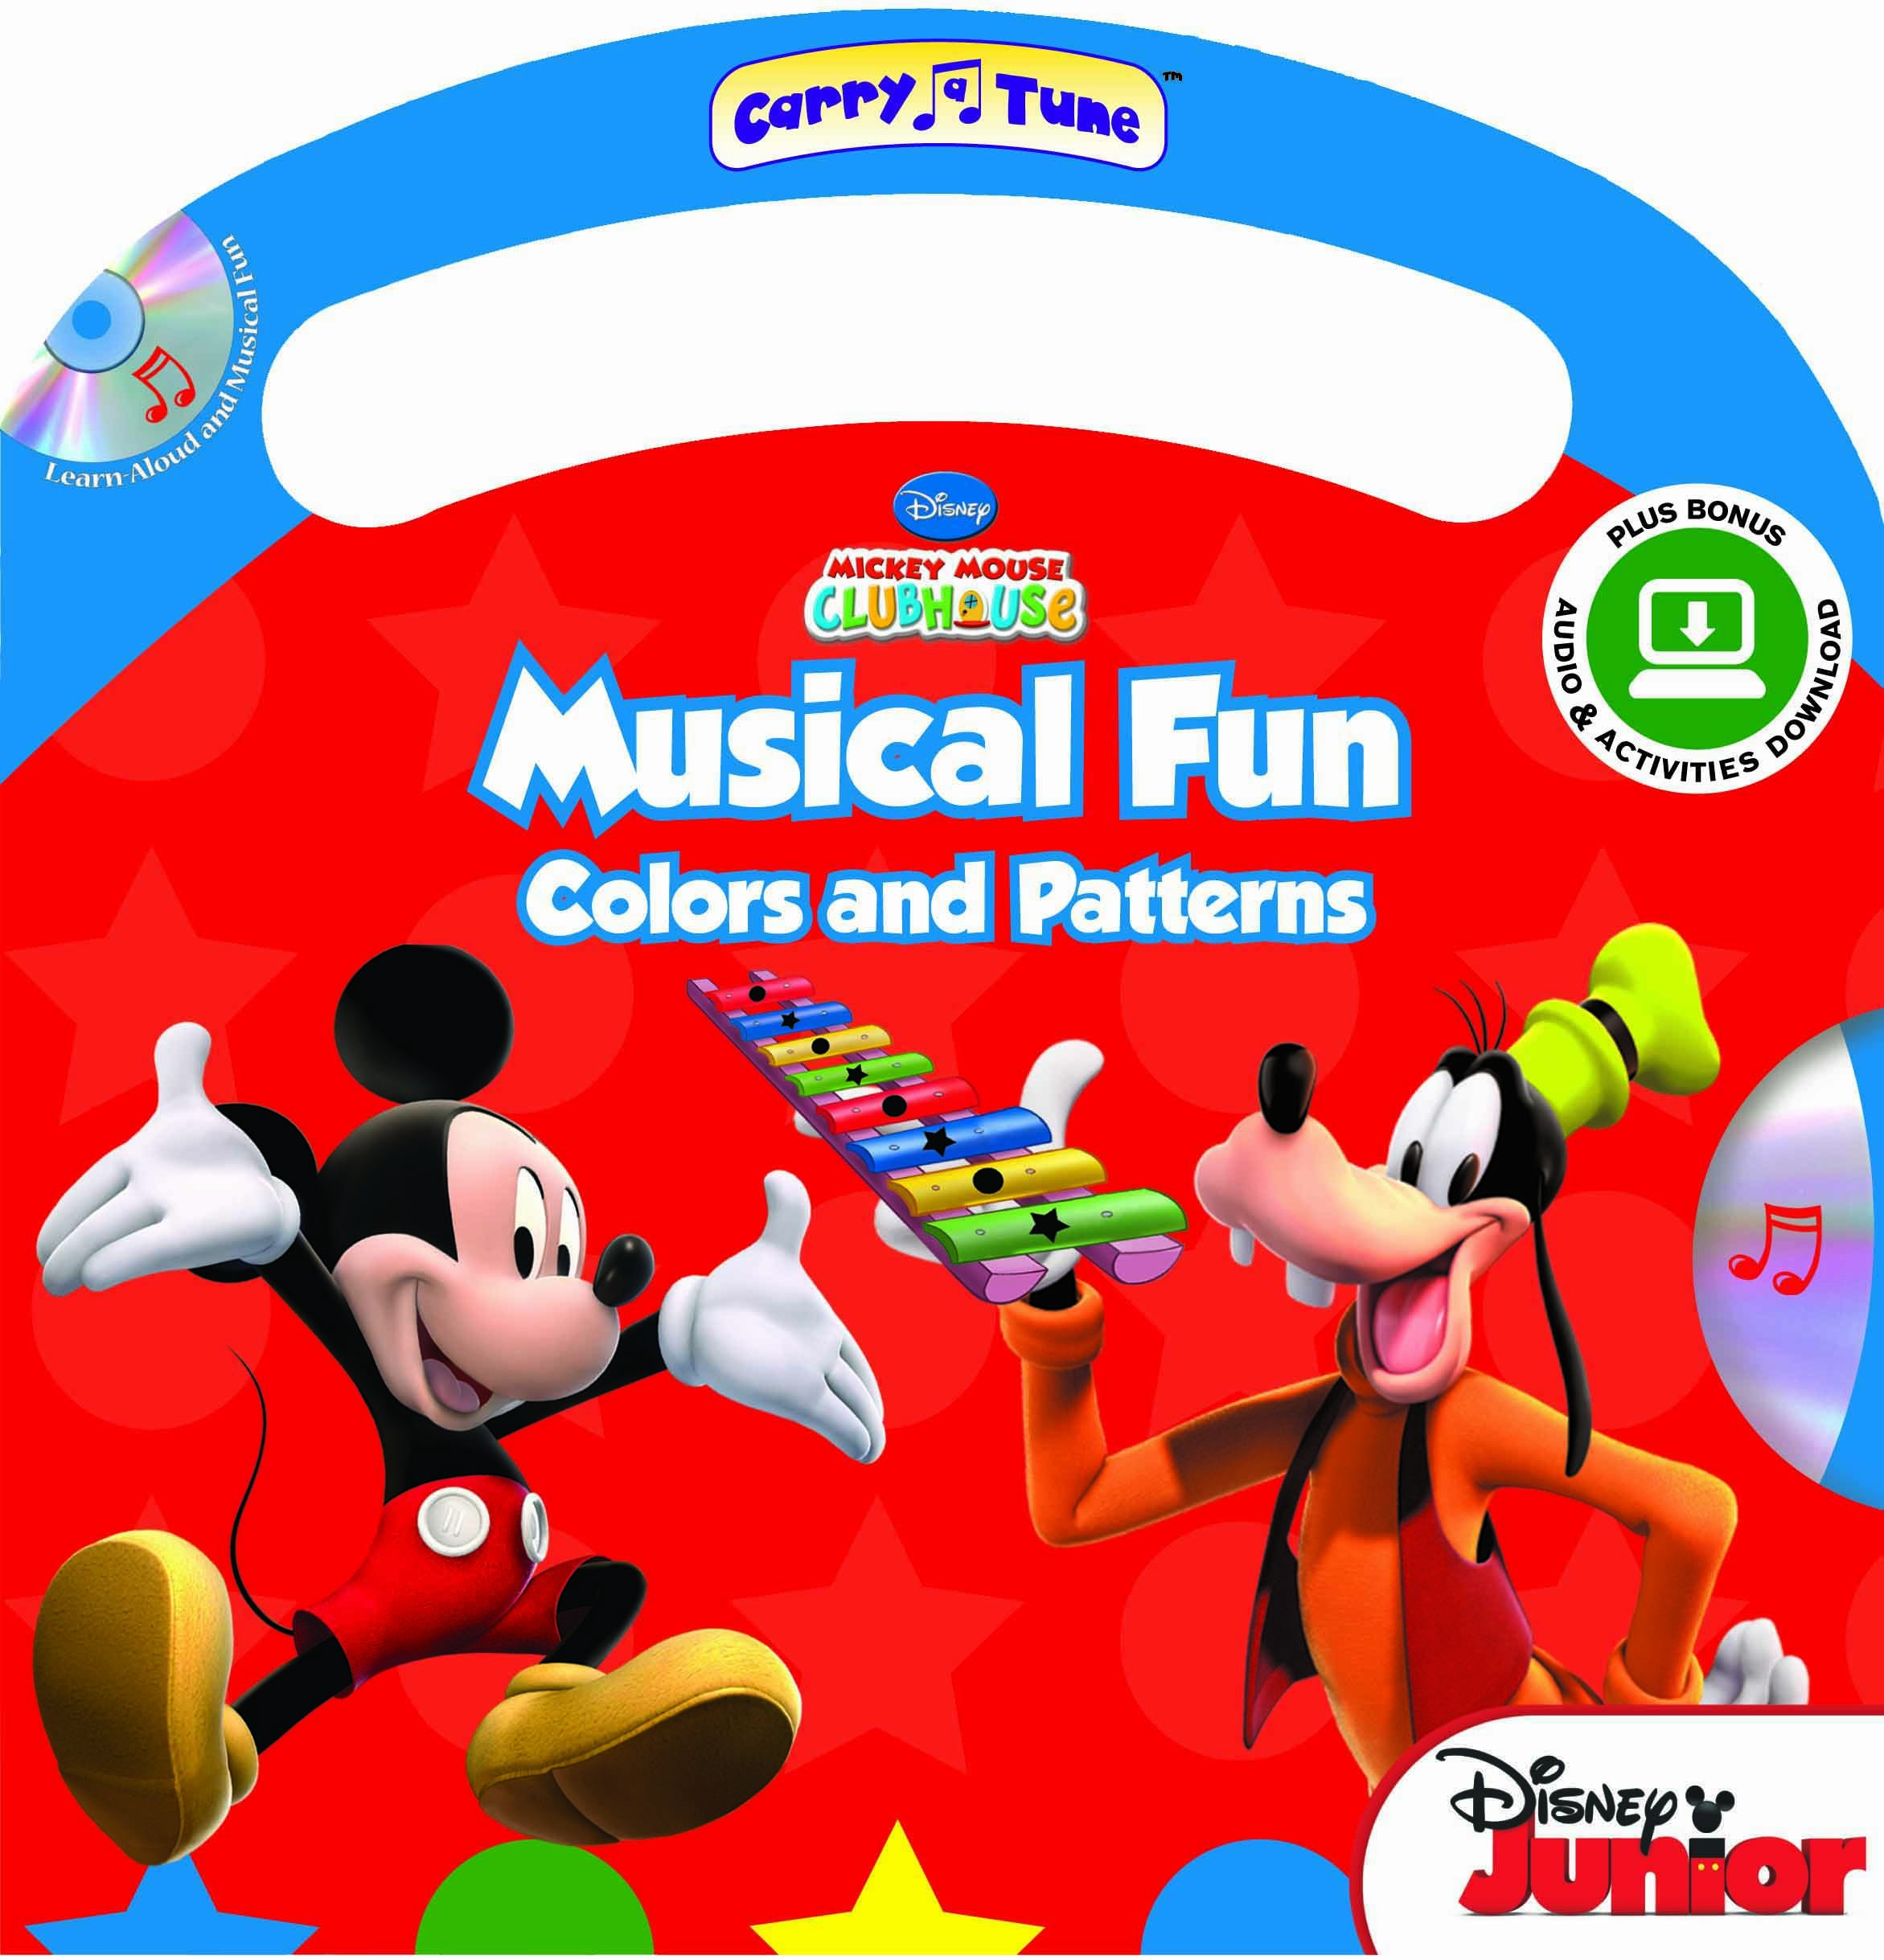 Download Disney Mickey Mouse Clubhouse Musical Fun: Colors and Patterns (Carry-A-Tune book with audio CD and easy-to-download audiobook and printable activities) PDF